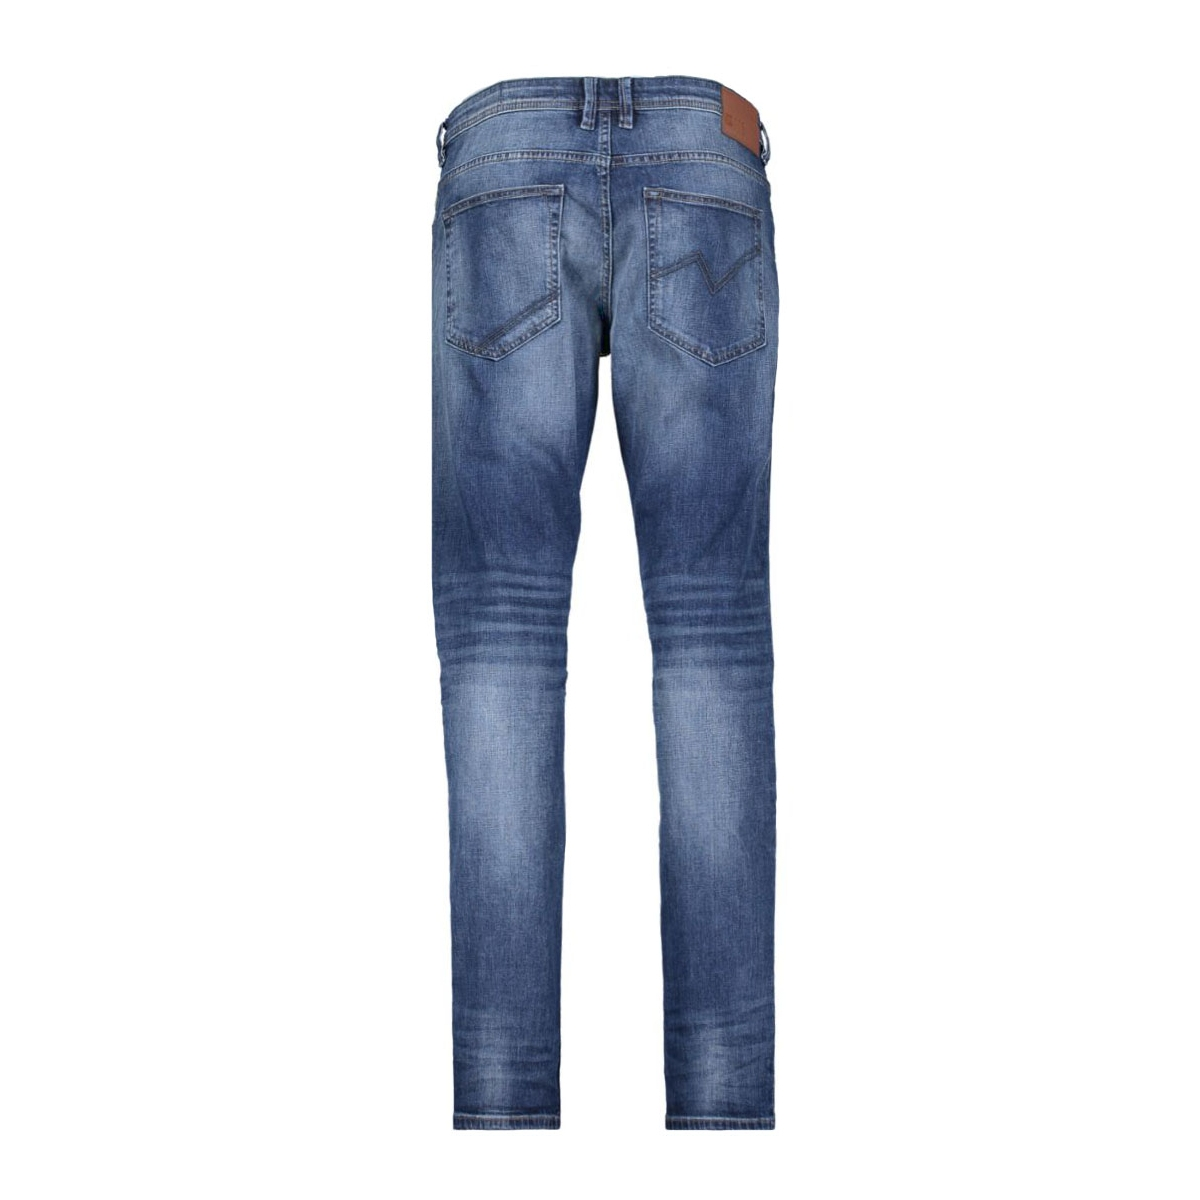 6204972.09.12 tom tailor jeans 1052